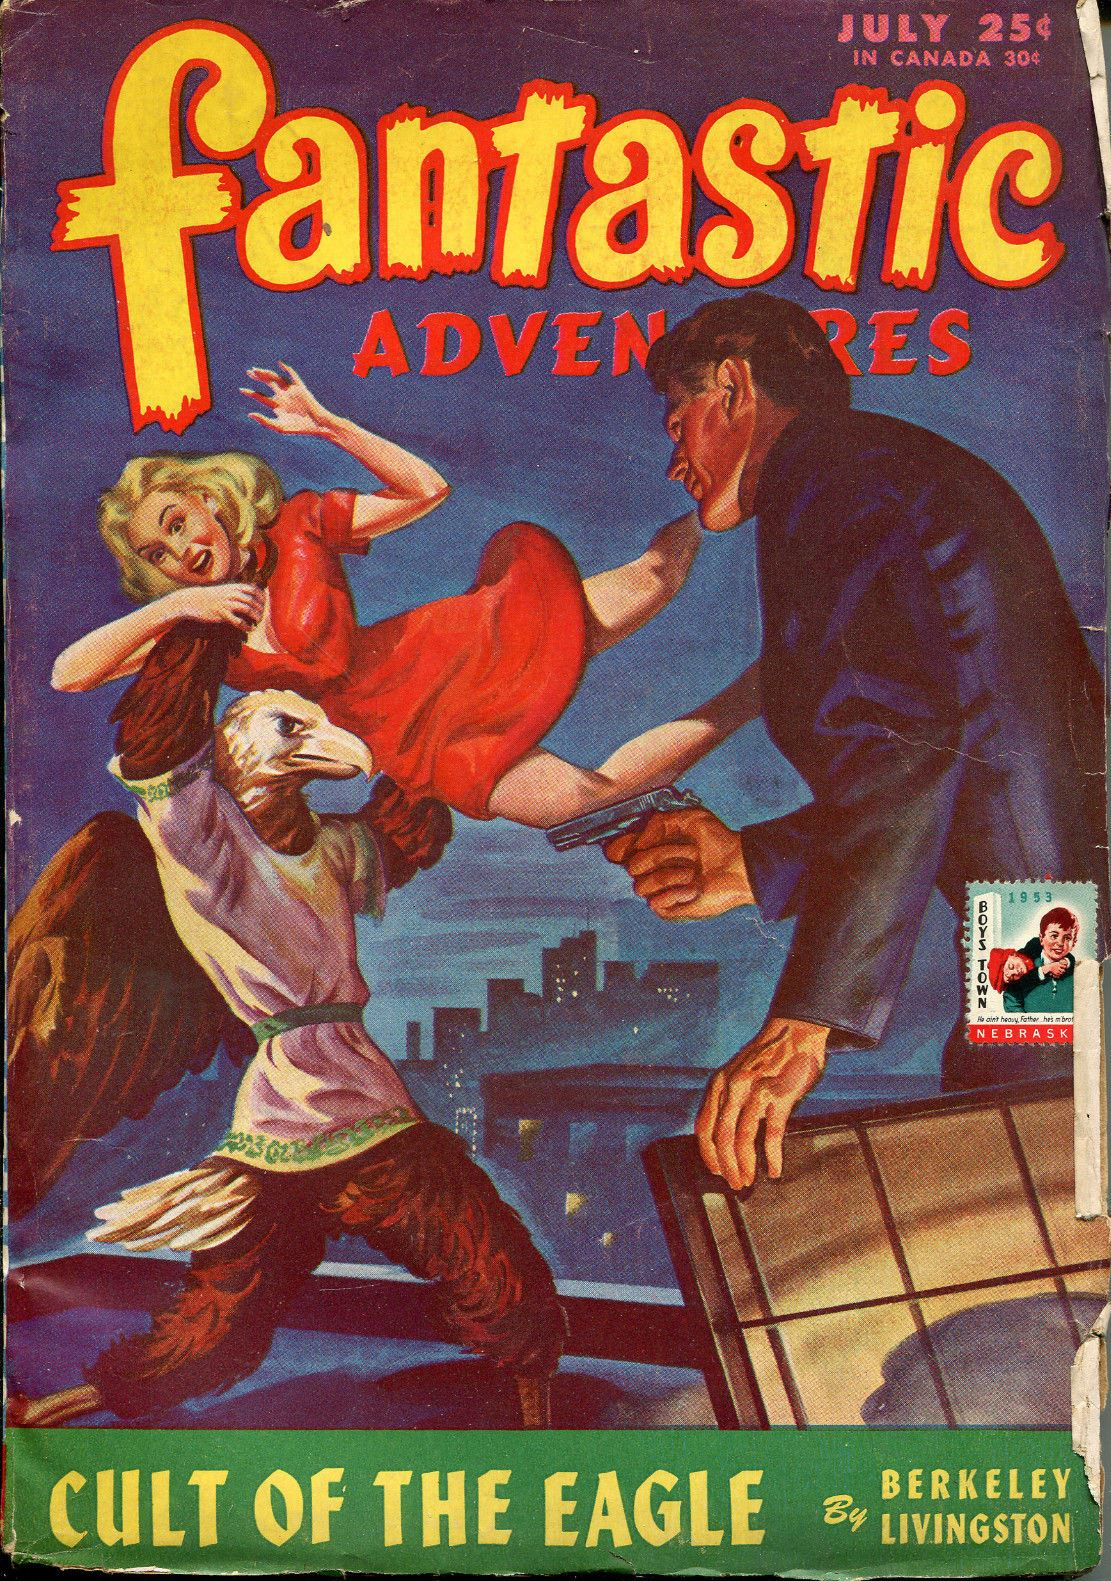 Fantastic Adventures, a pulp-fiction mag from the 50's